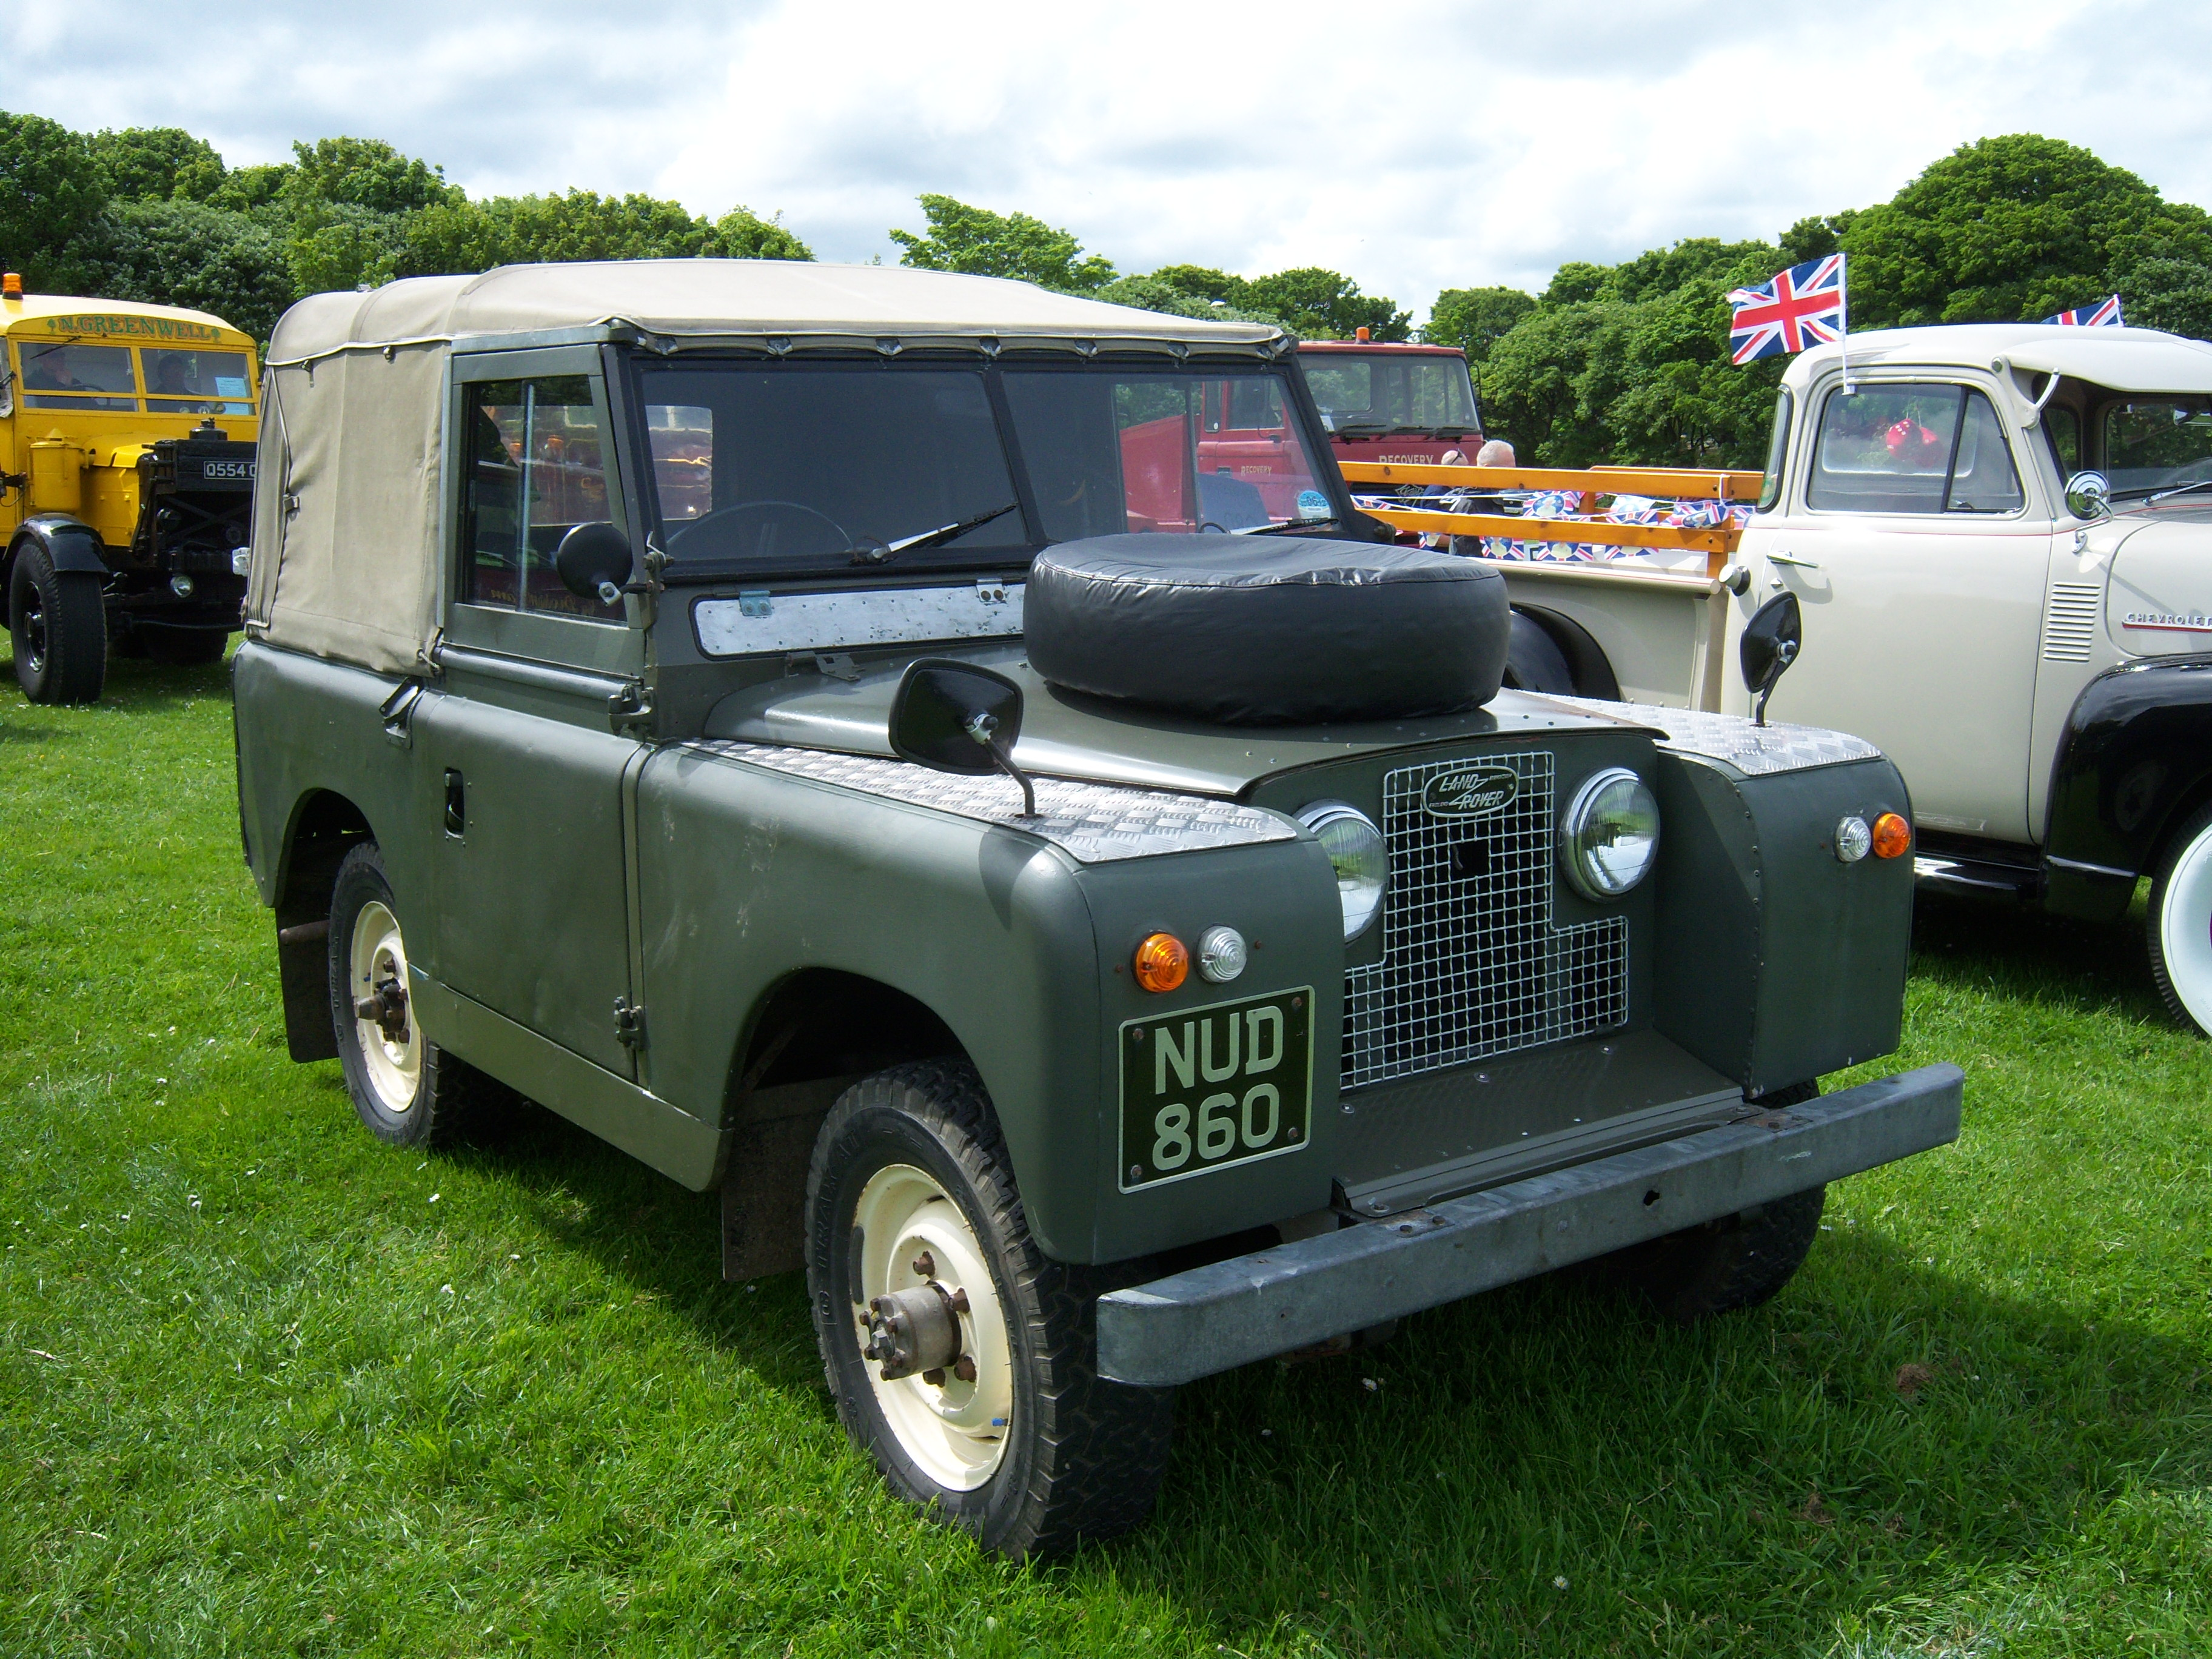 file 1959 land rover series ii nud 860 2012 hcvs tyne tees wikimedia commons. Black Bedroom Furniture Sets. Home Design Ideas